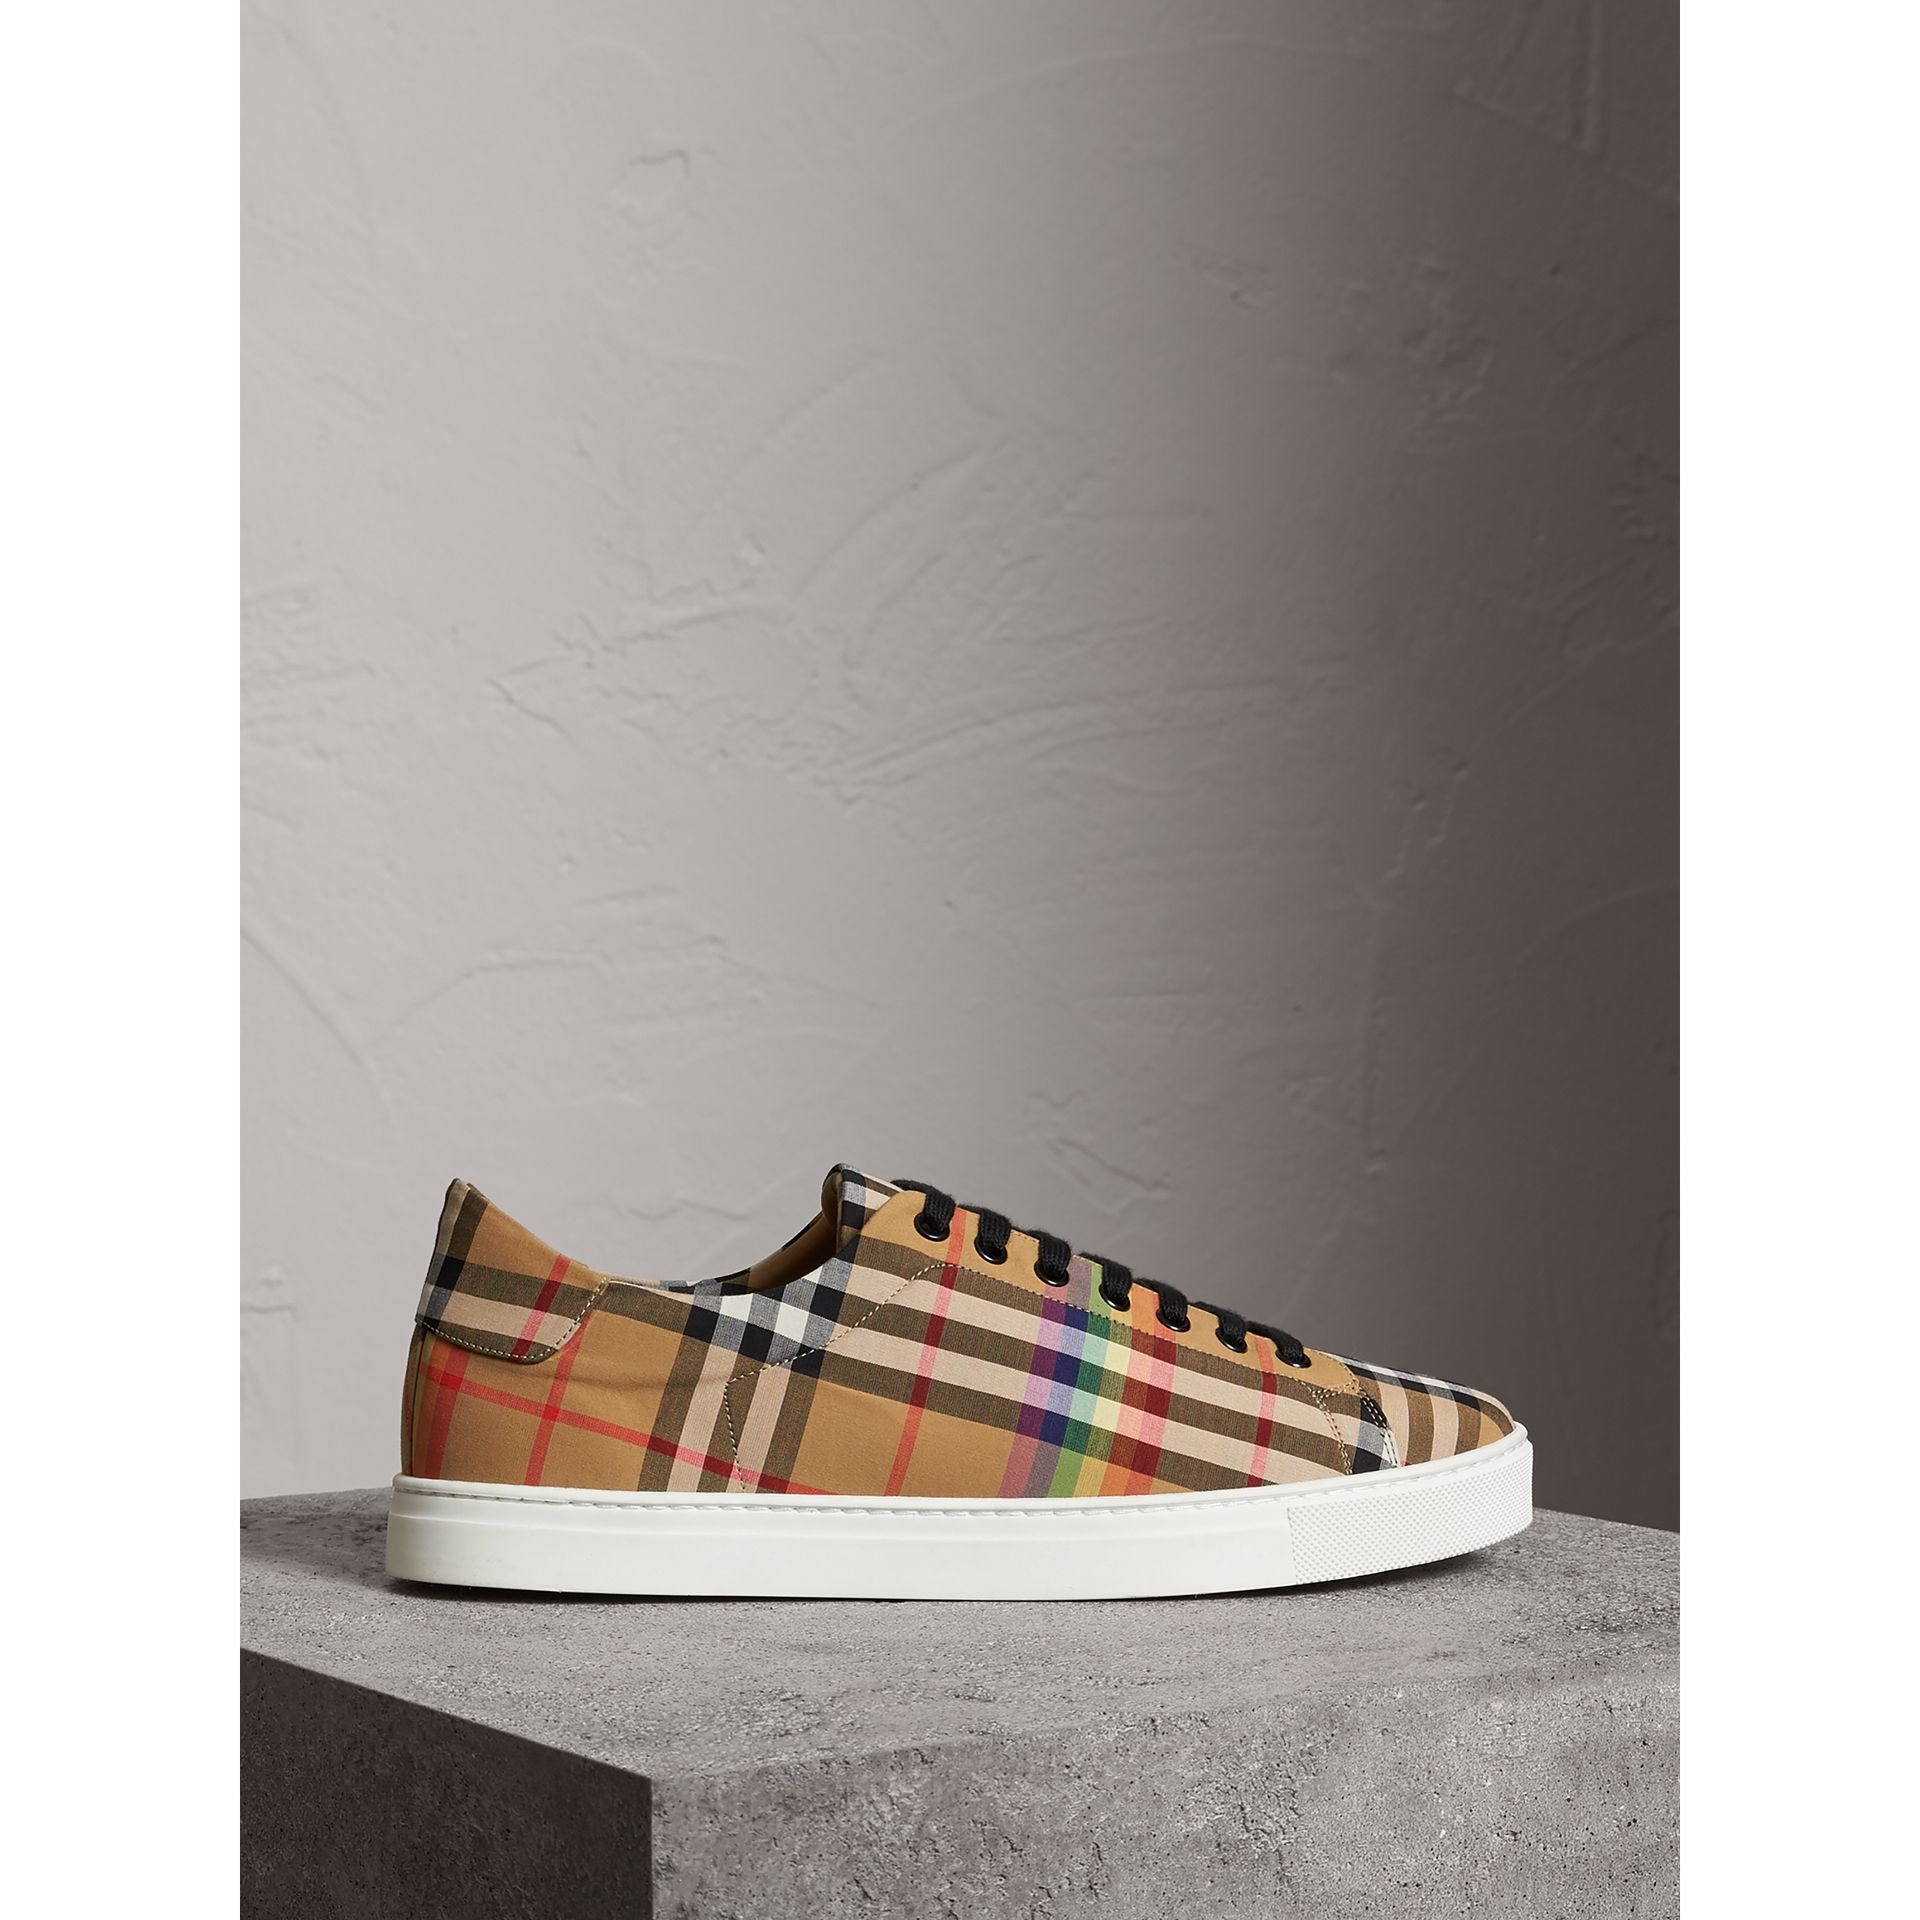 Burberry Antique Yellow Rainbow Vintage Check Sneakers